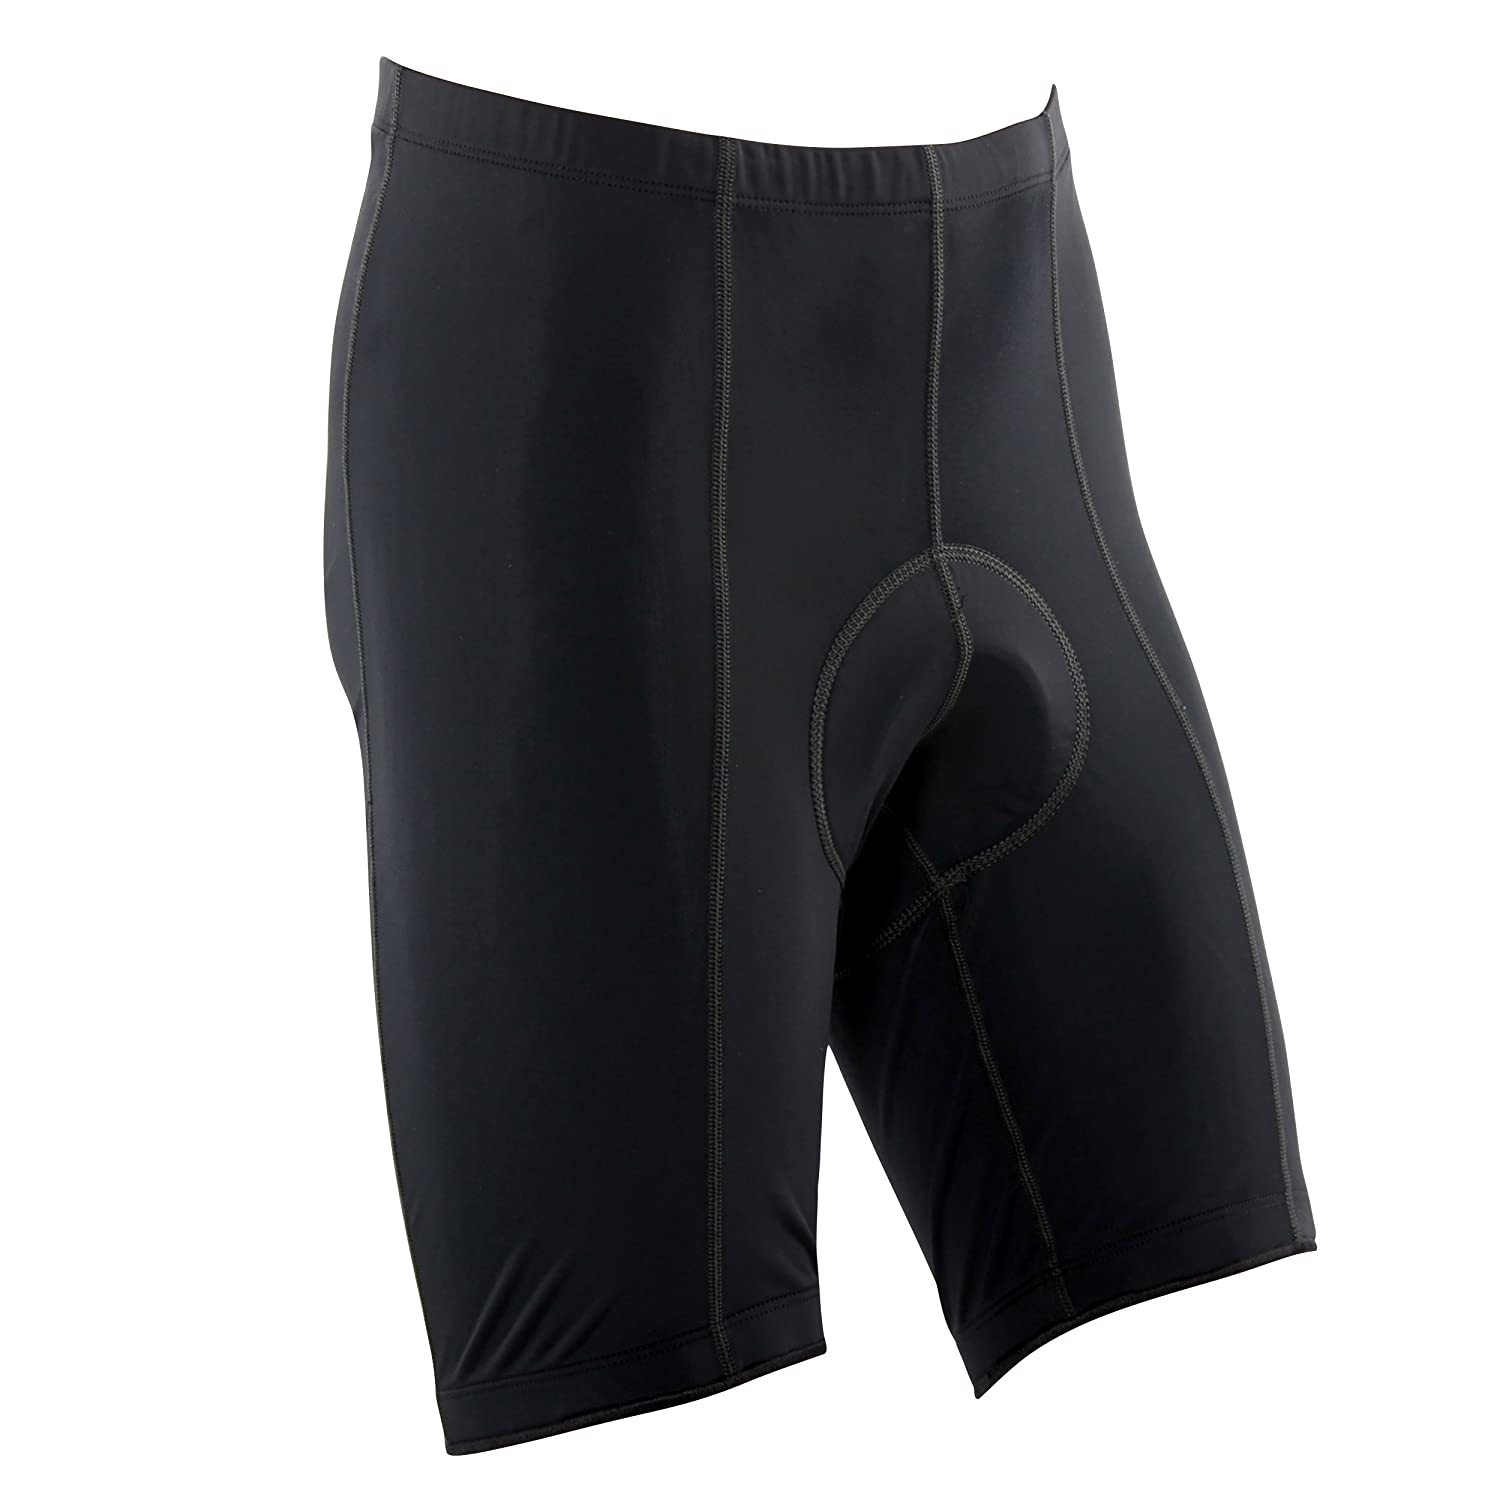 Body Glove Pro Comfort 8-panel Cycling Short Cycle Force Group PC8-LG-P